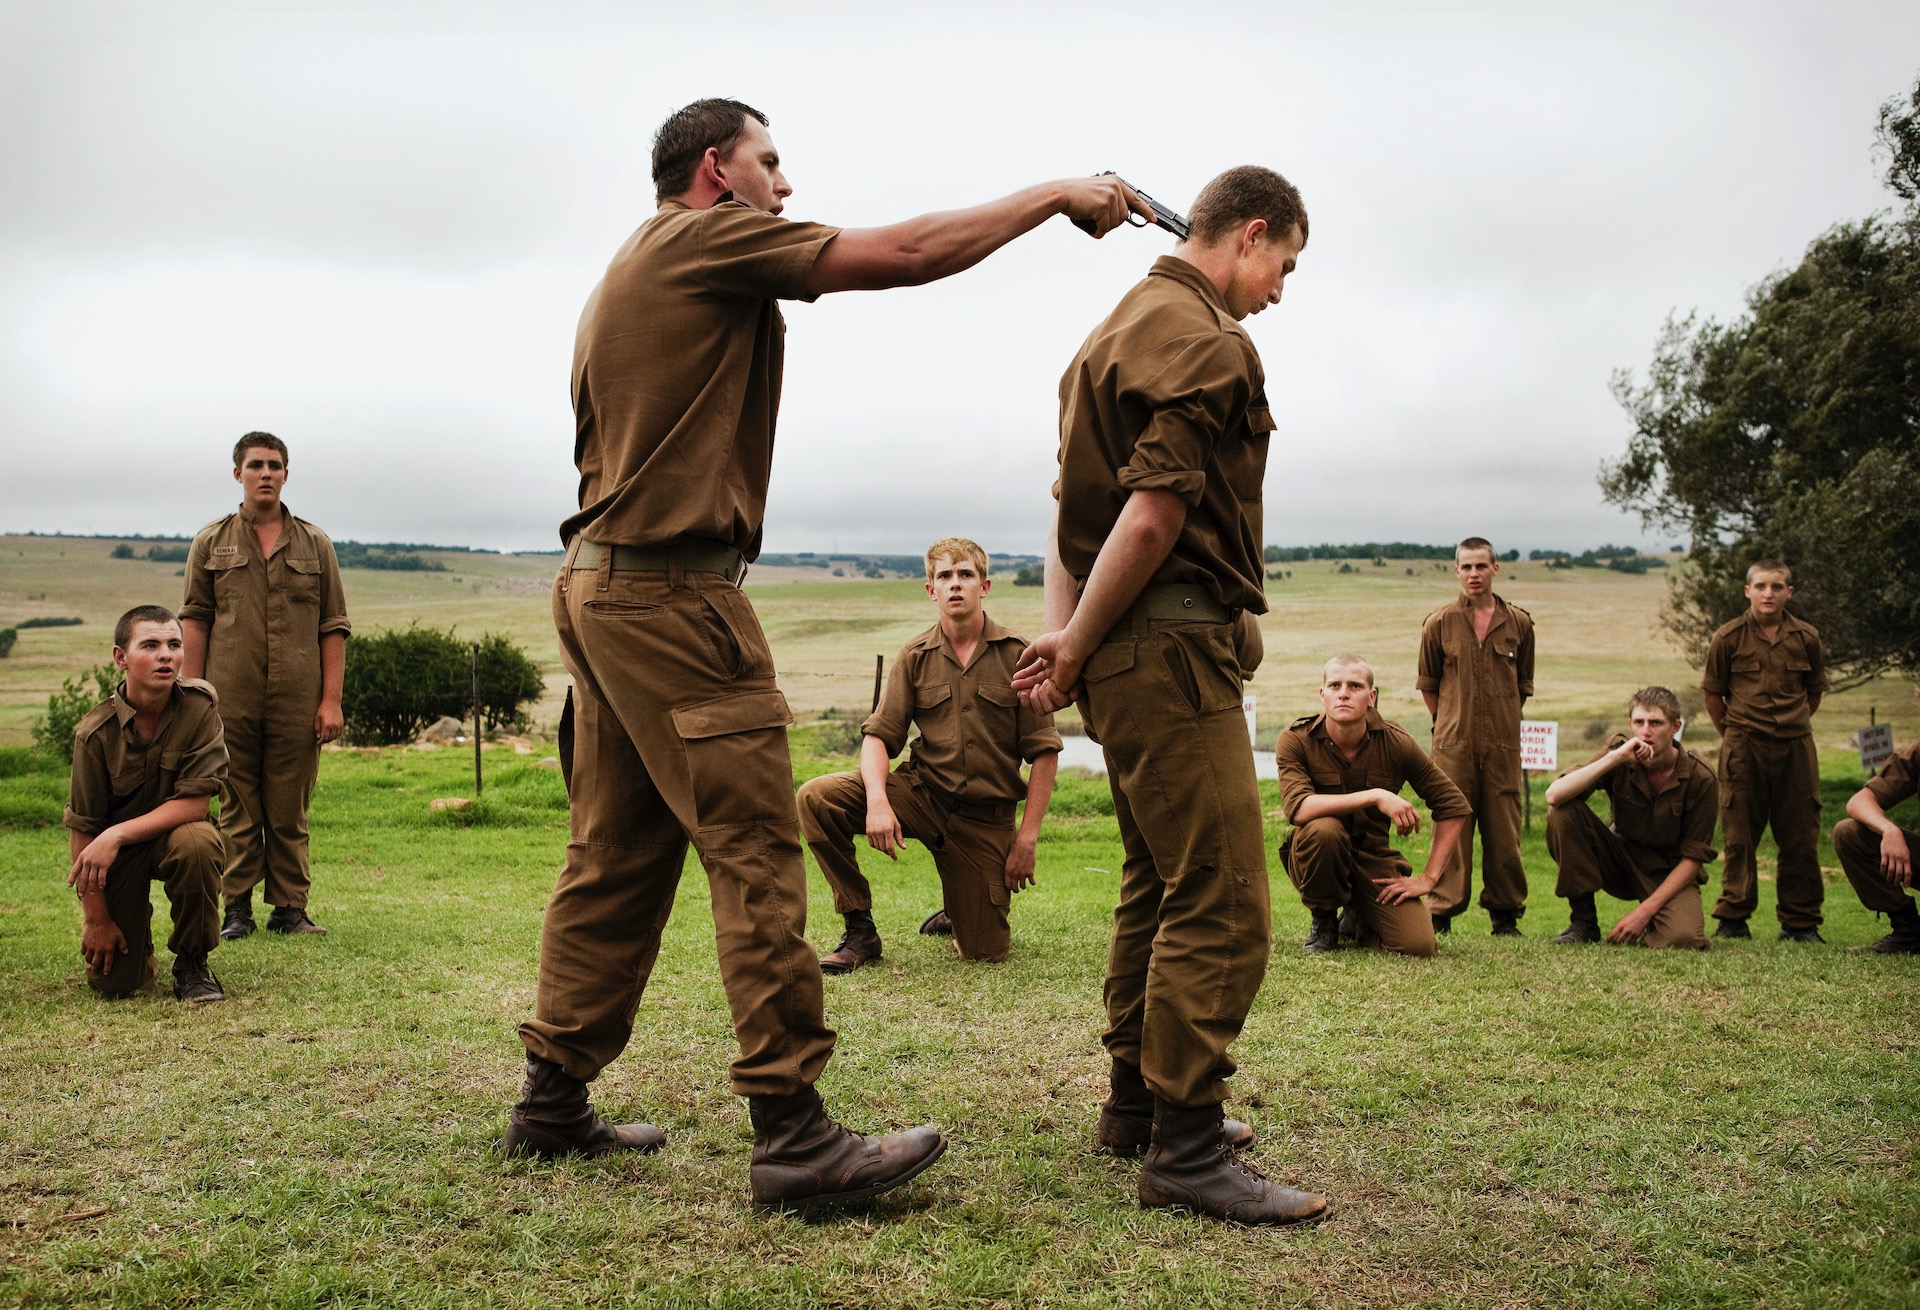 5.  One of the camp leaders points a gun at a boys' heads, during a self defence lesson in the field during the Kommandokorps camp in Carolina, South Africa.  The Kommandokorps organises right wing racist camps during school holidays for young white Afrikaner teenagers, teaching them self-defence and how to combat a perceived black enemy. The group's leader, self-proclaimed 'Colonel' Franz Jooste, served with the South African Defence Force under the old apartheid regime and eschews the vision of a multicultural nation. (2011)